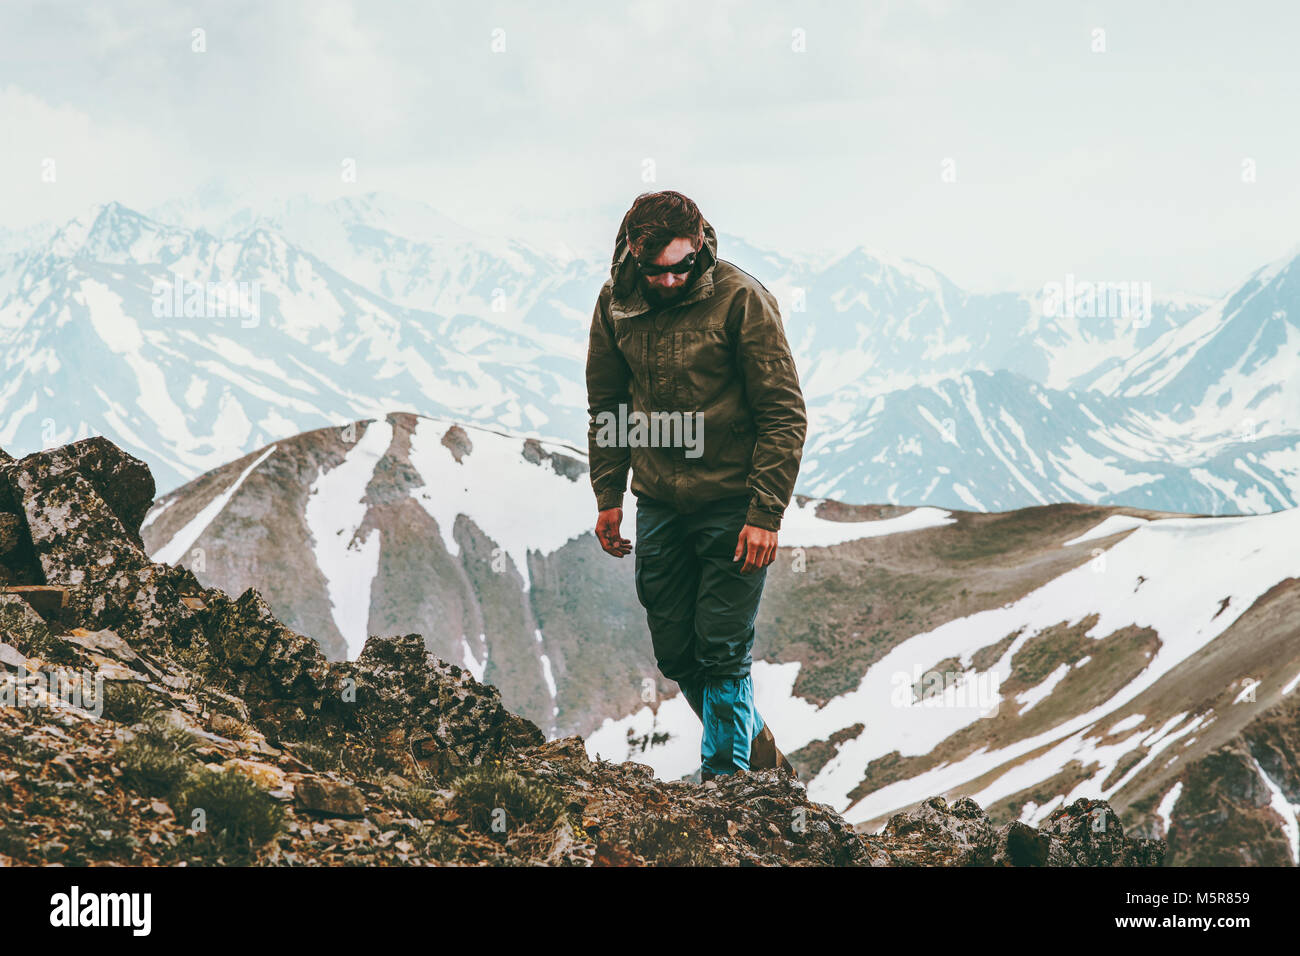 Mountains Hiking Man Travel Lifestyle concept adventure outdoor active vacations trekking sport wild nature - Stock Image